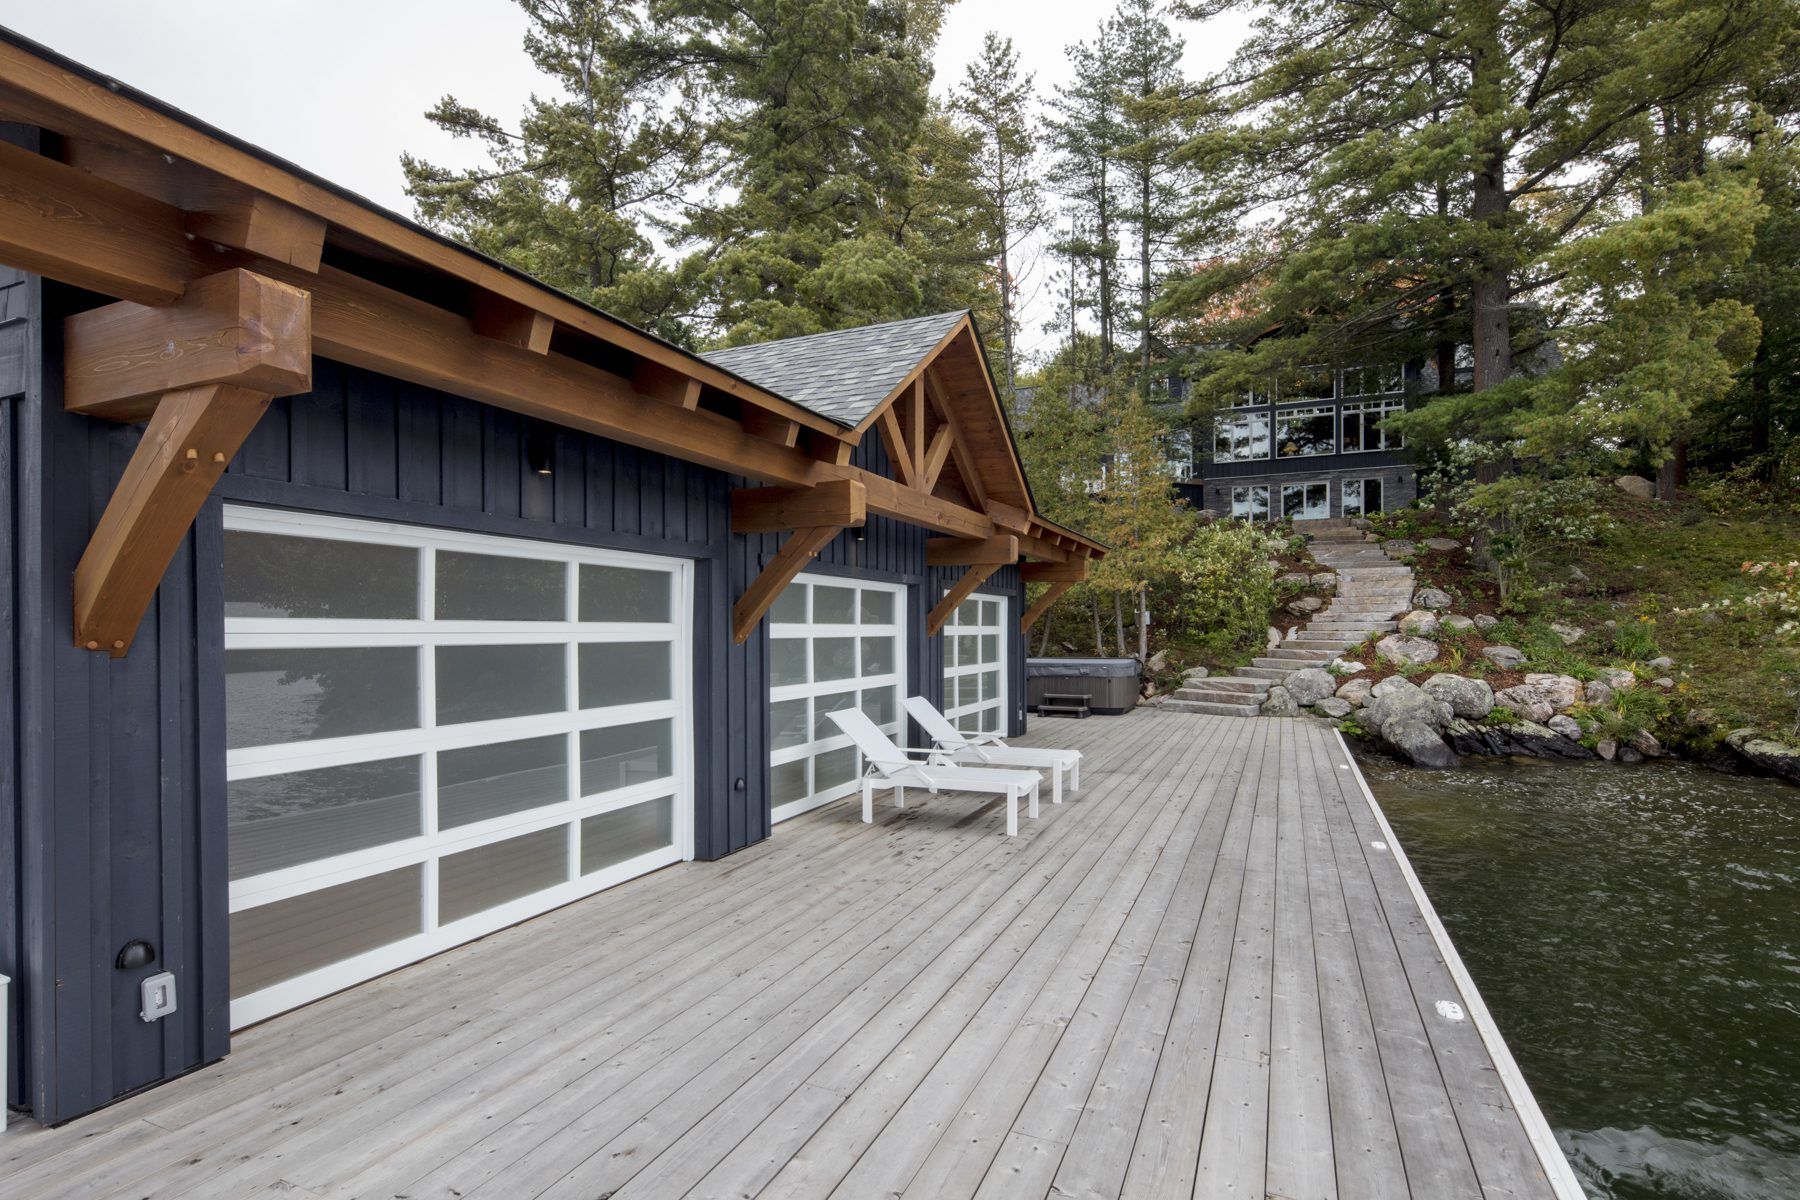 Normerica Timber Frame, Exterior, Cottage, Boathouse, View to the Cottage